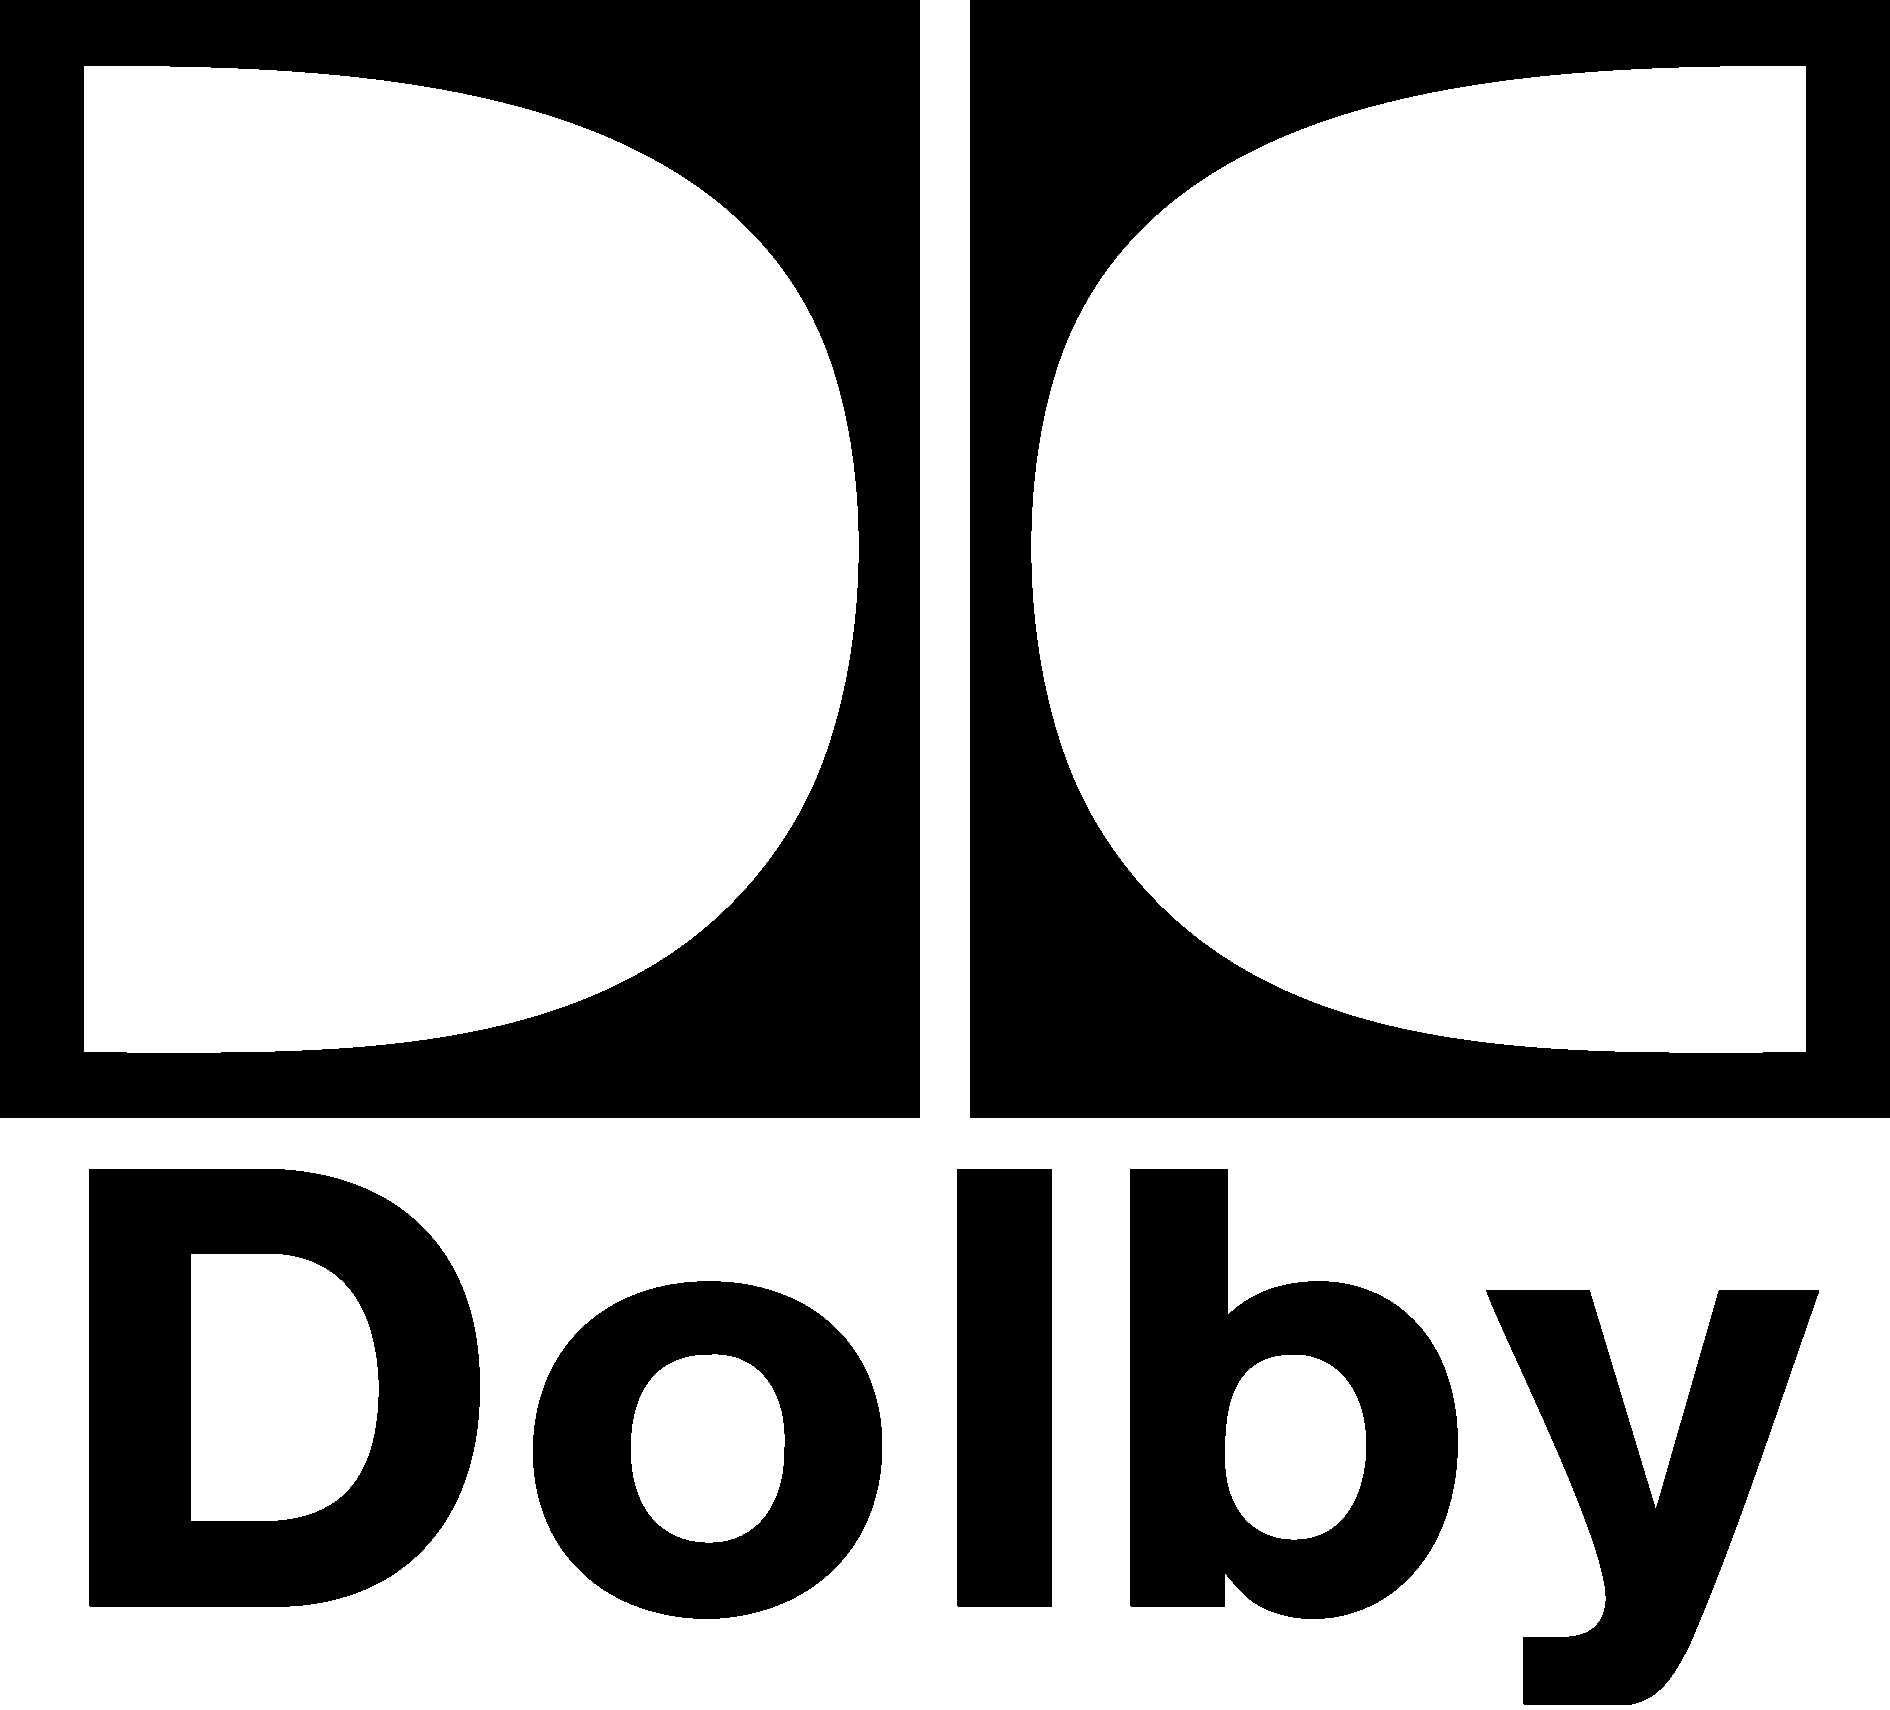 dolby surround png logo #5535